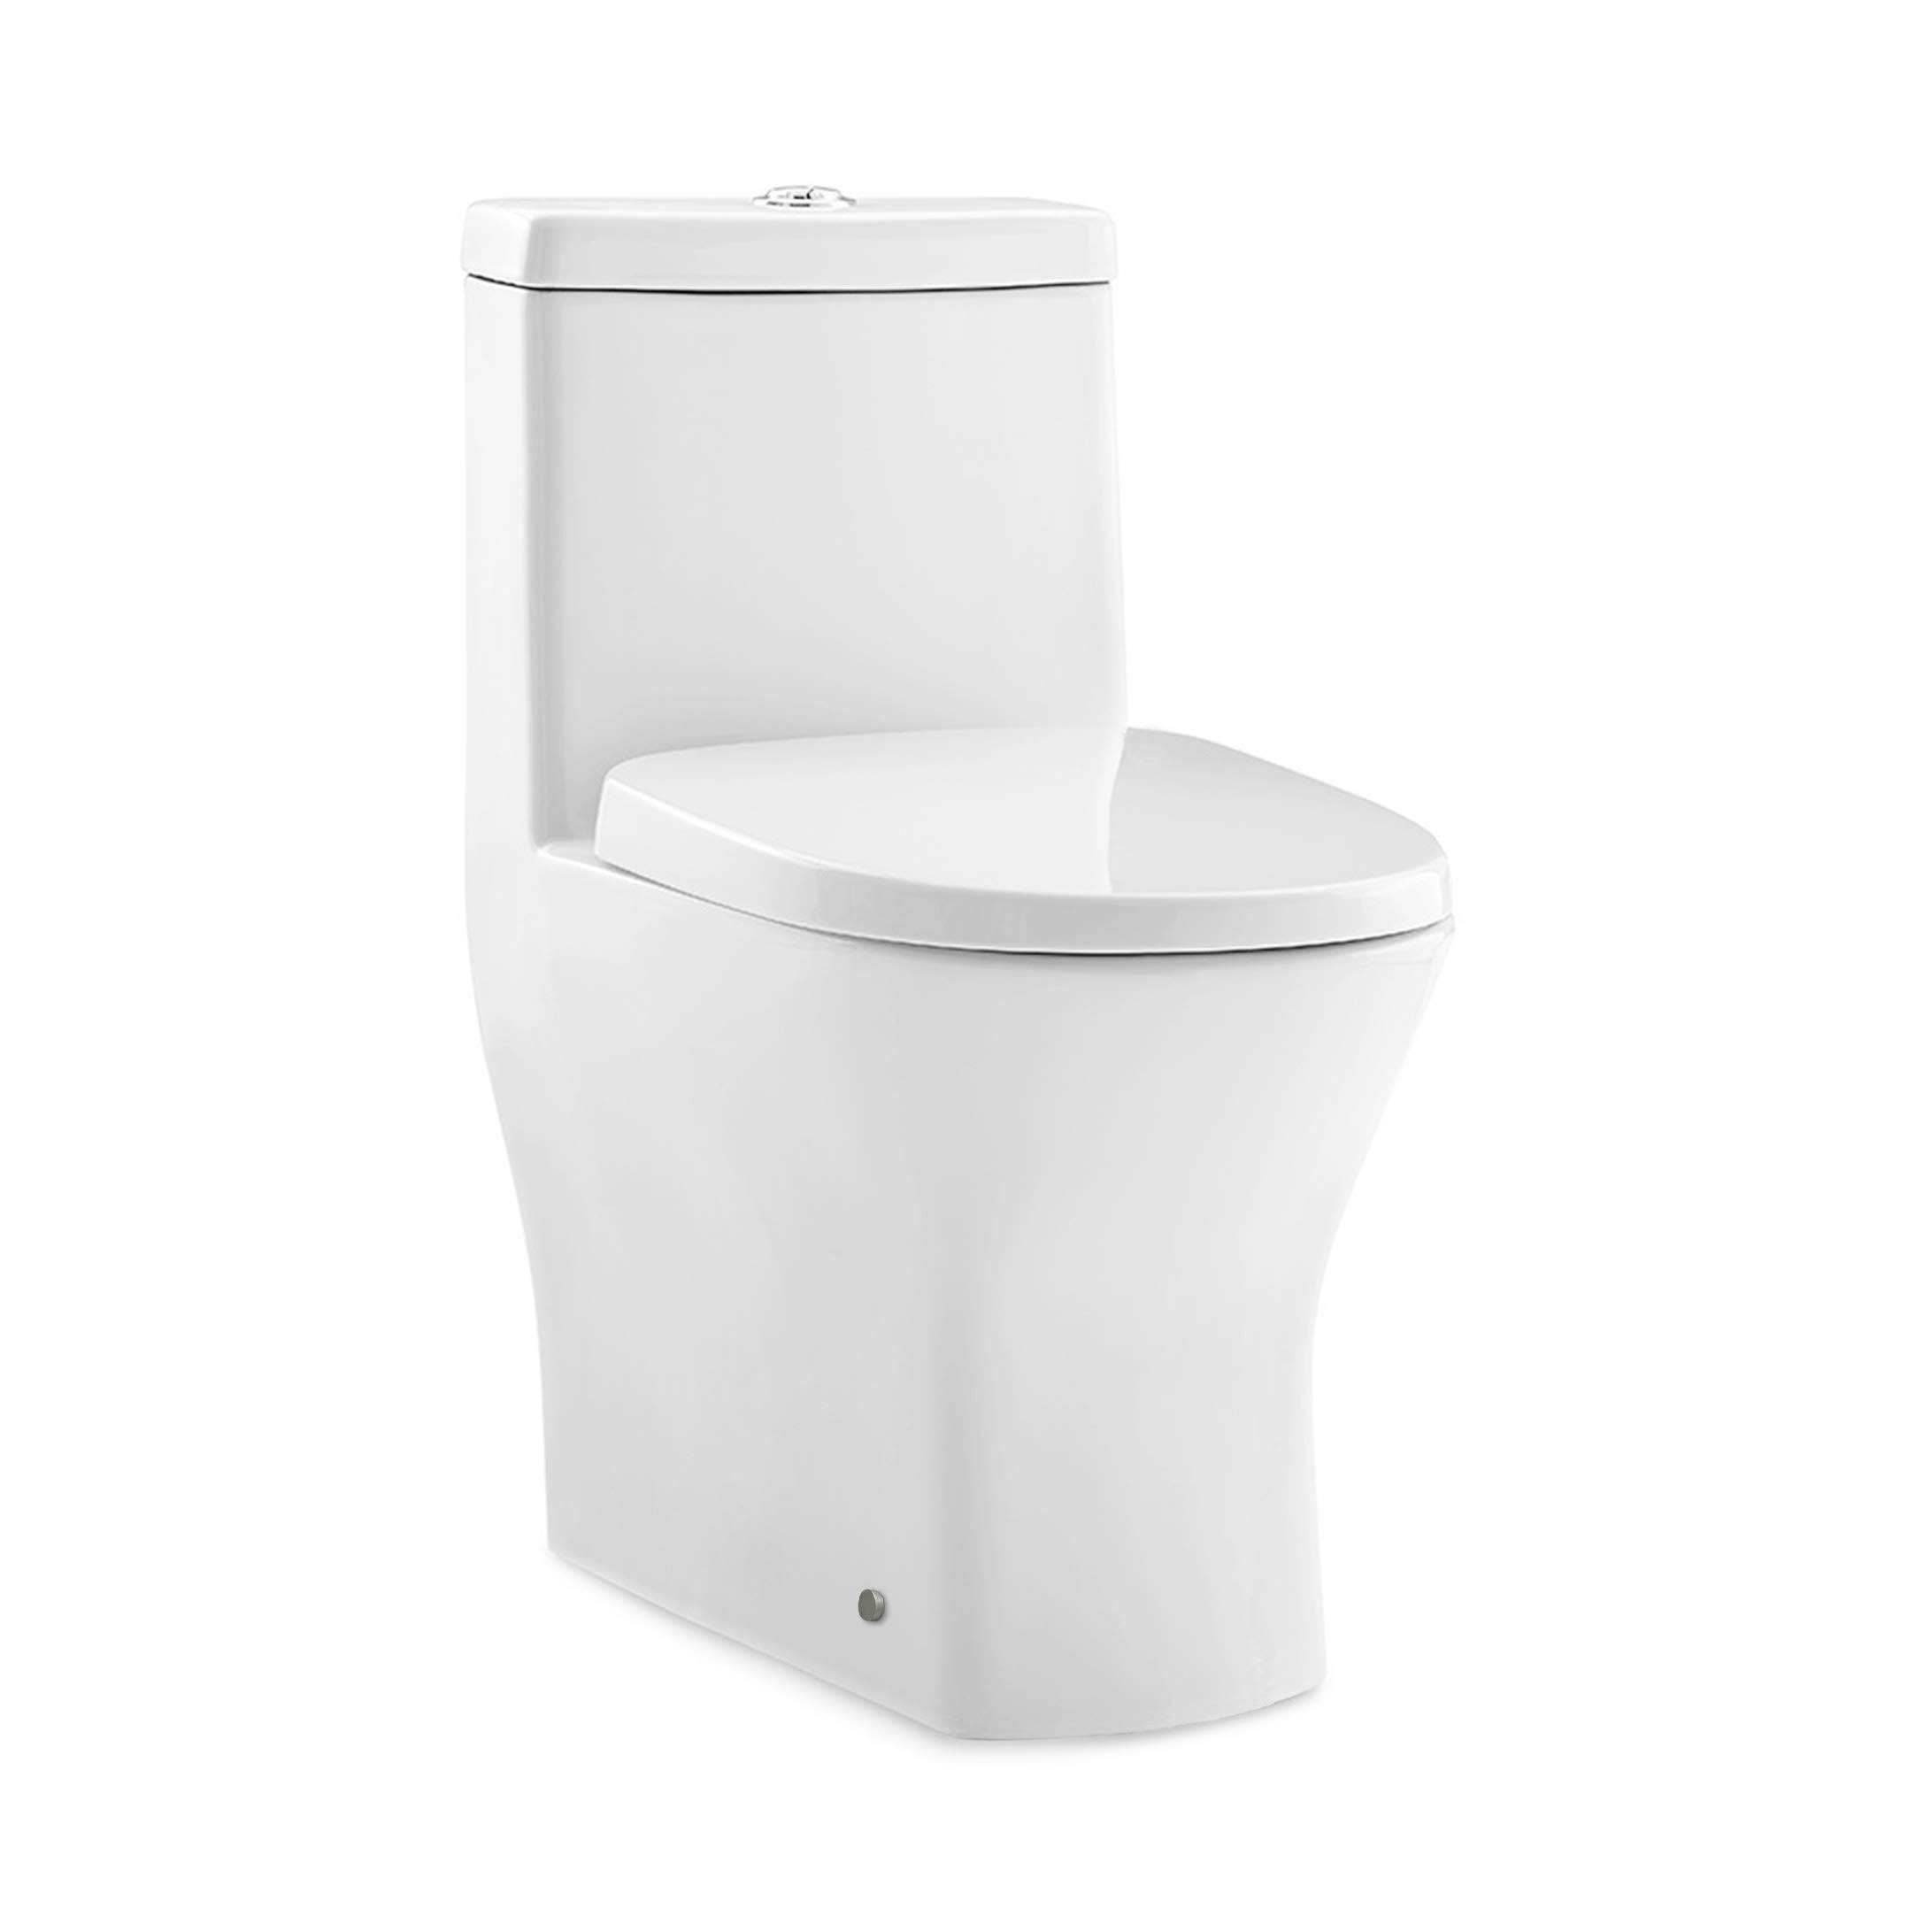 Swiss Madison SM-1T257 Sublime One Piece Toilet, Glossy White by Swiss Madison